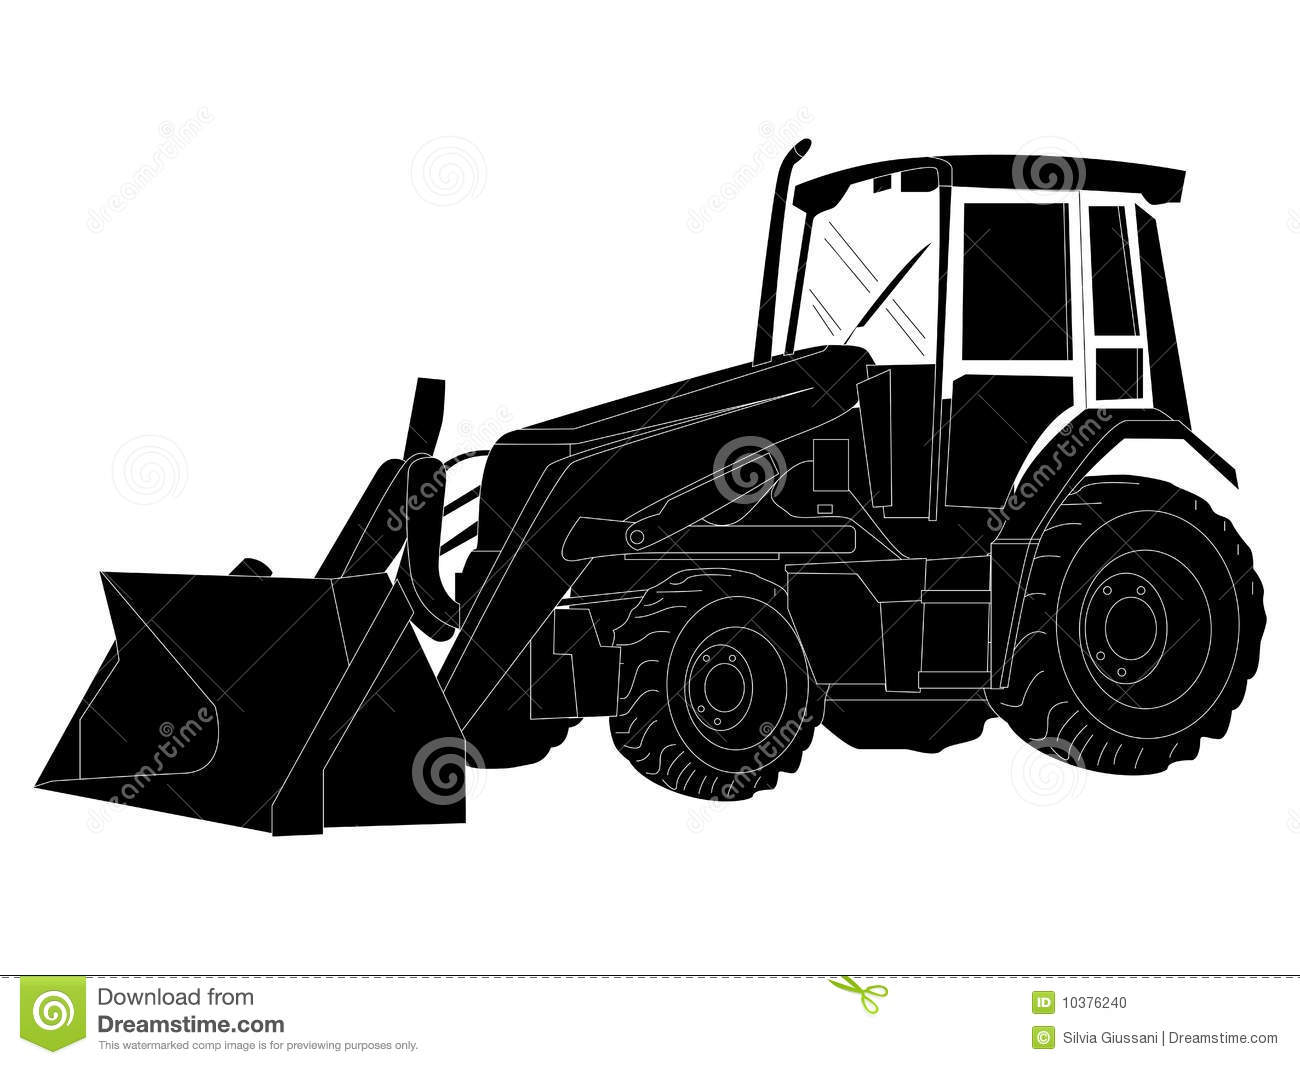 Silhouette at getdrawings com. Backhoe clipart black and white